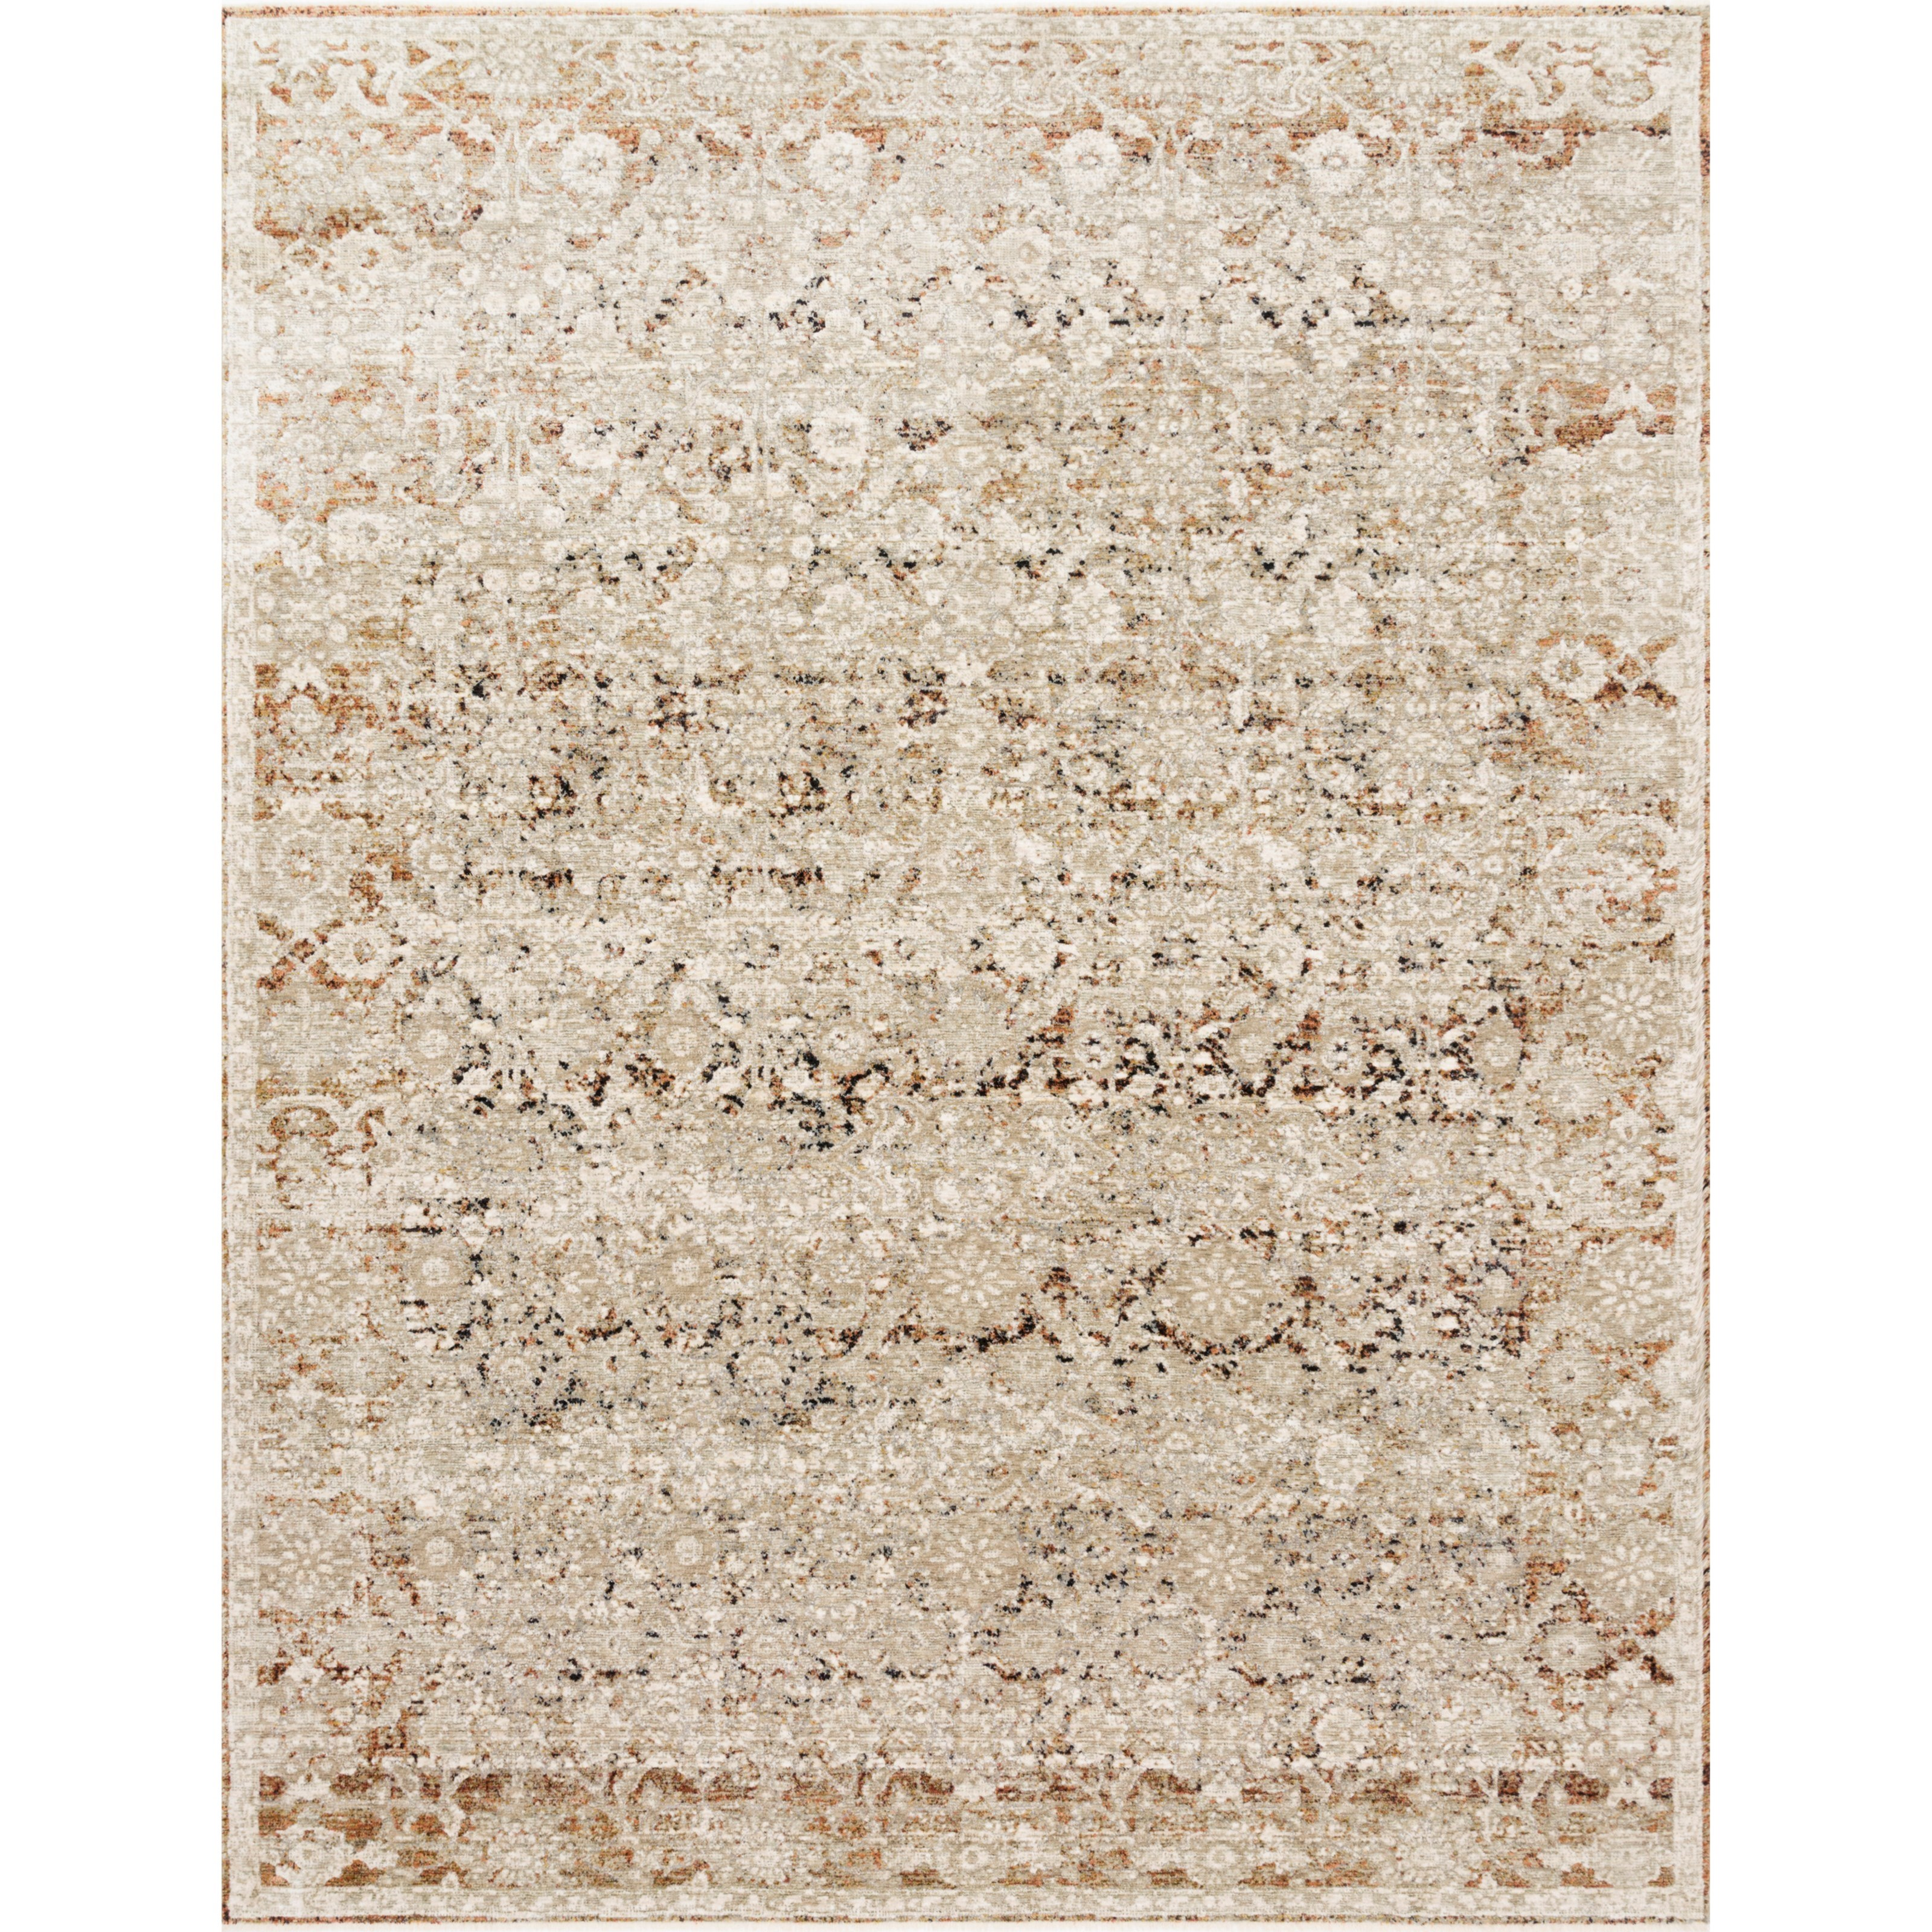 "Theia 2'10"" x 10' Natural / Rust Rug by Loloi Rugs at Sprintz Furniture"